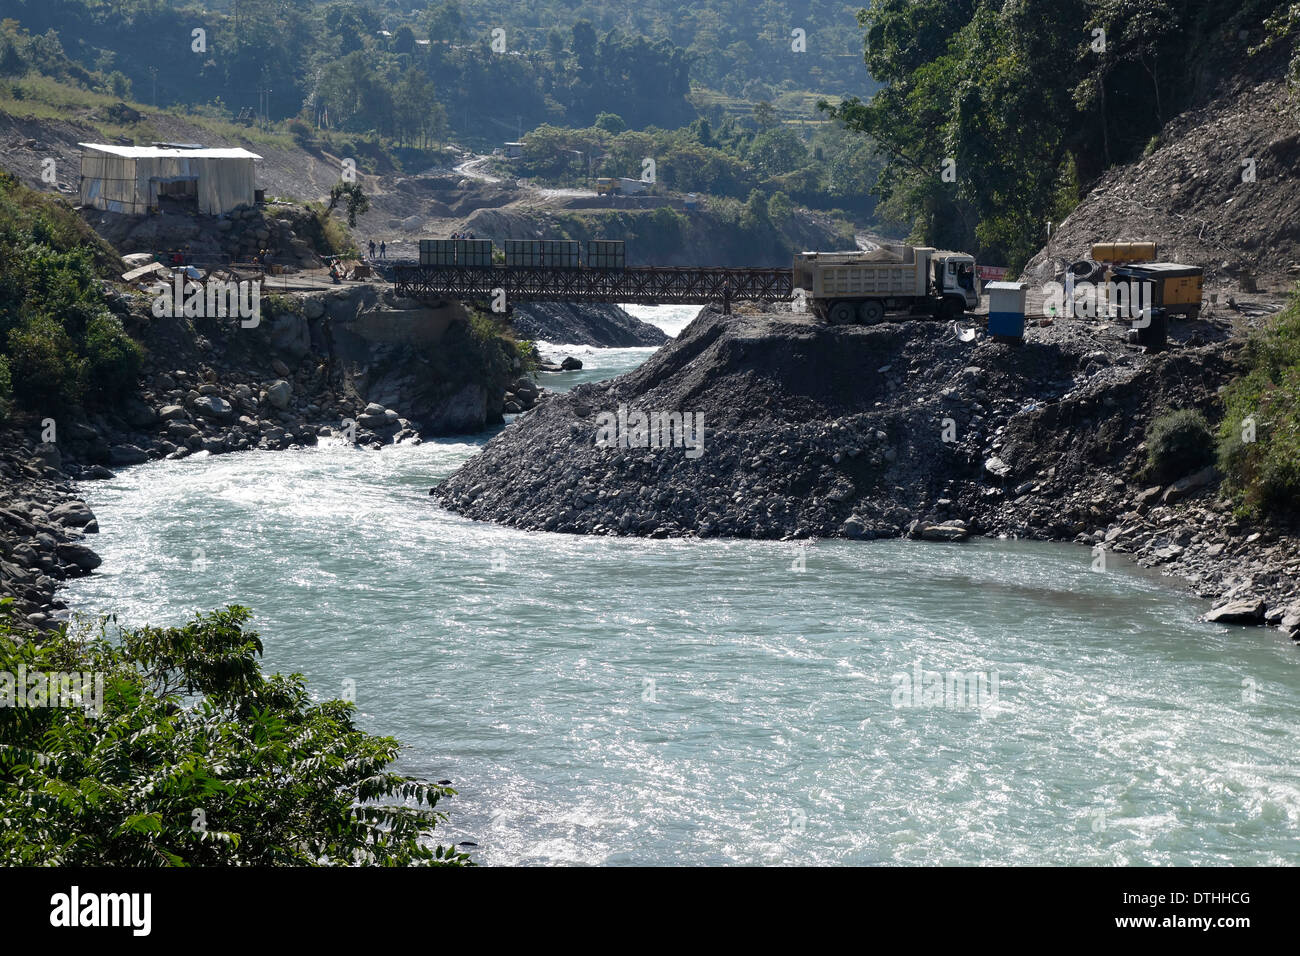 Temporary bridge over the Marsyangdi River in Nepal, part of the controversial Upper Marsyangdi dam project. - Stock Image